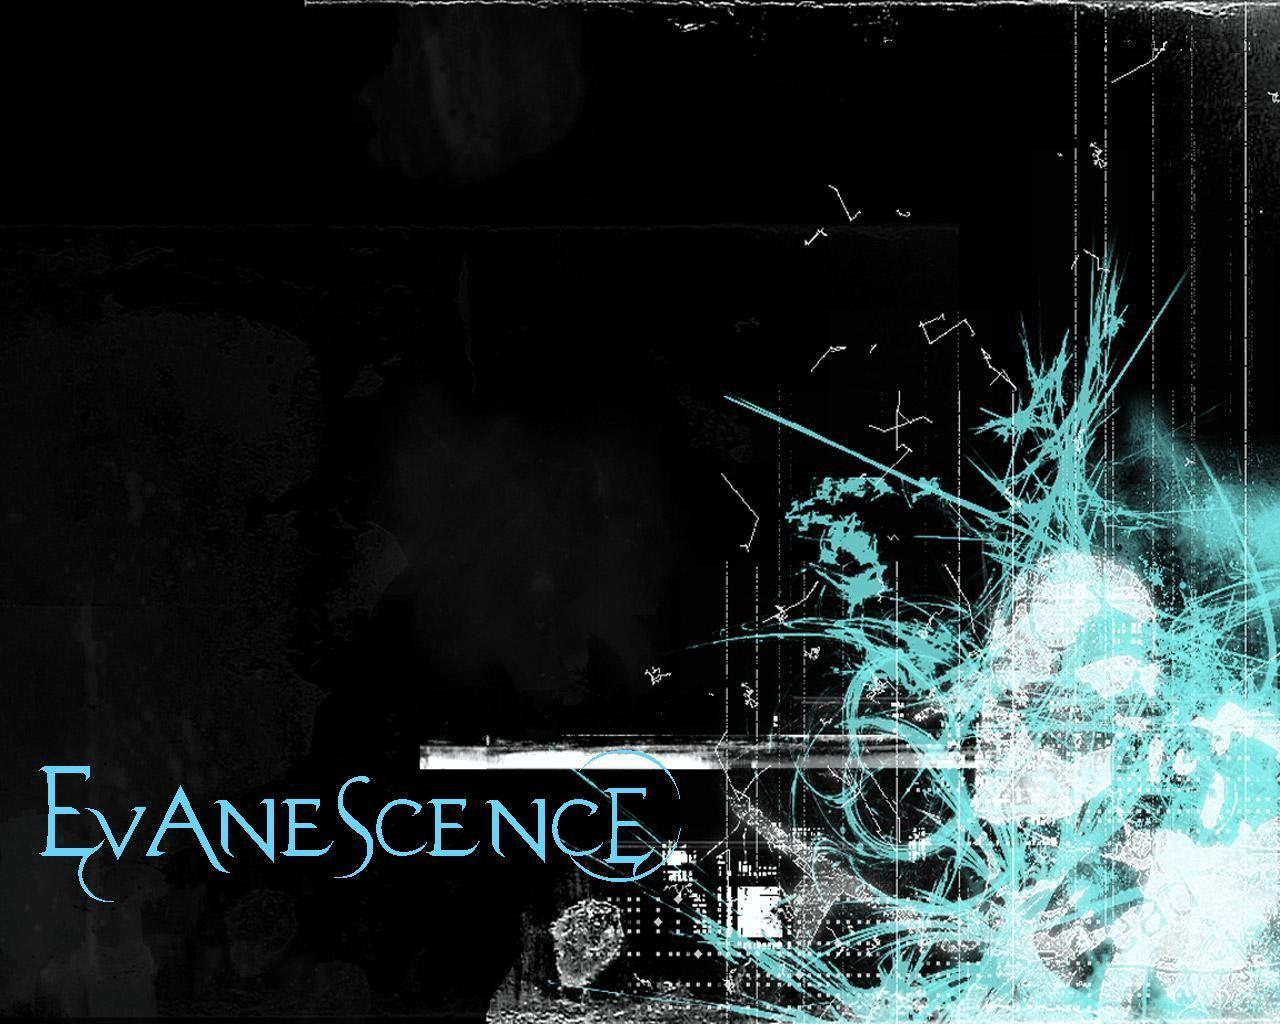 Evanescence Logo Wallpapers 1280x1024